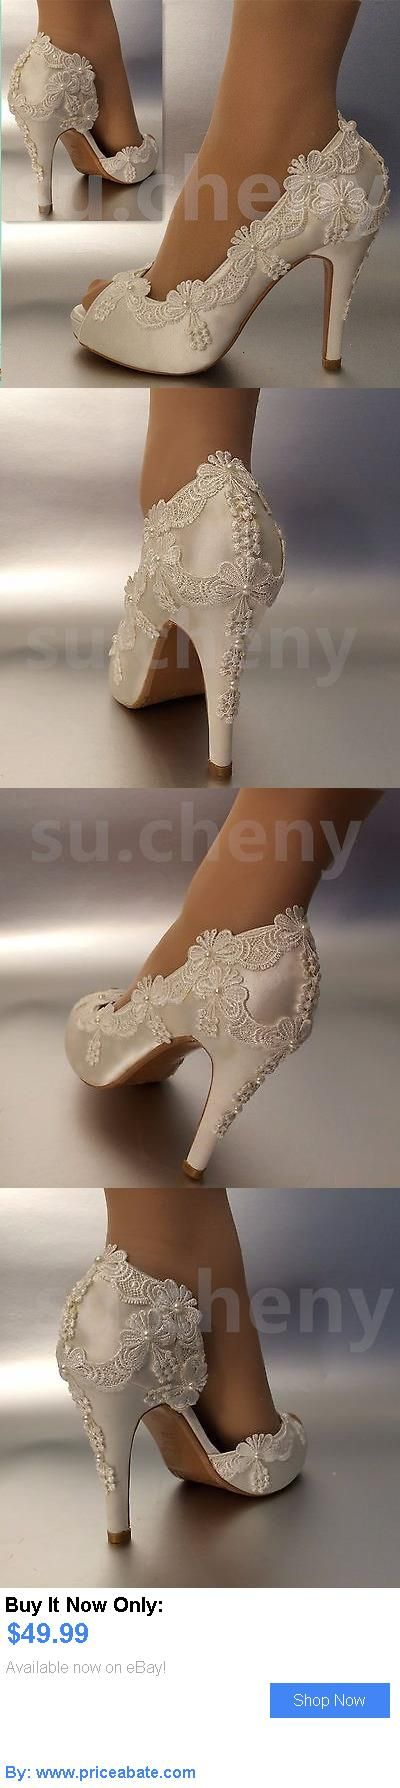 Wedding Shoes And Bridal Shoes: 34 Heel Satin White Ivory Lace Pearls Open Toe Wedding Shoes Bride Size 5-9.5 BUY IT NOW ONLY: $49.99 #priceabateWeddingShoesAndBridalShoes OR #priceabate